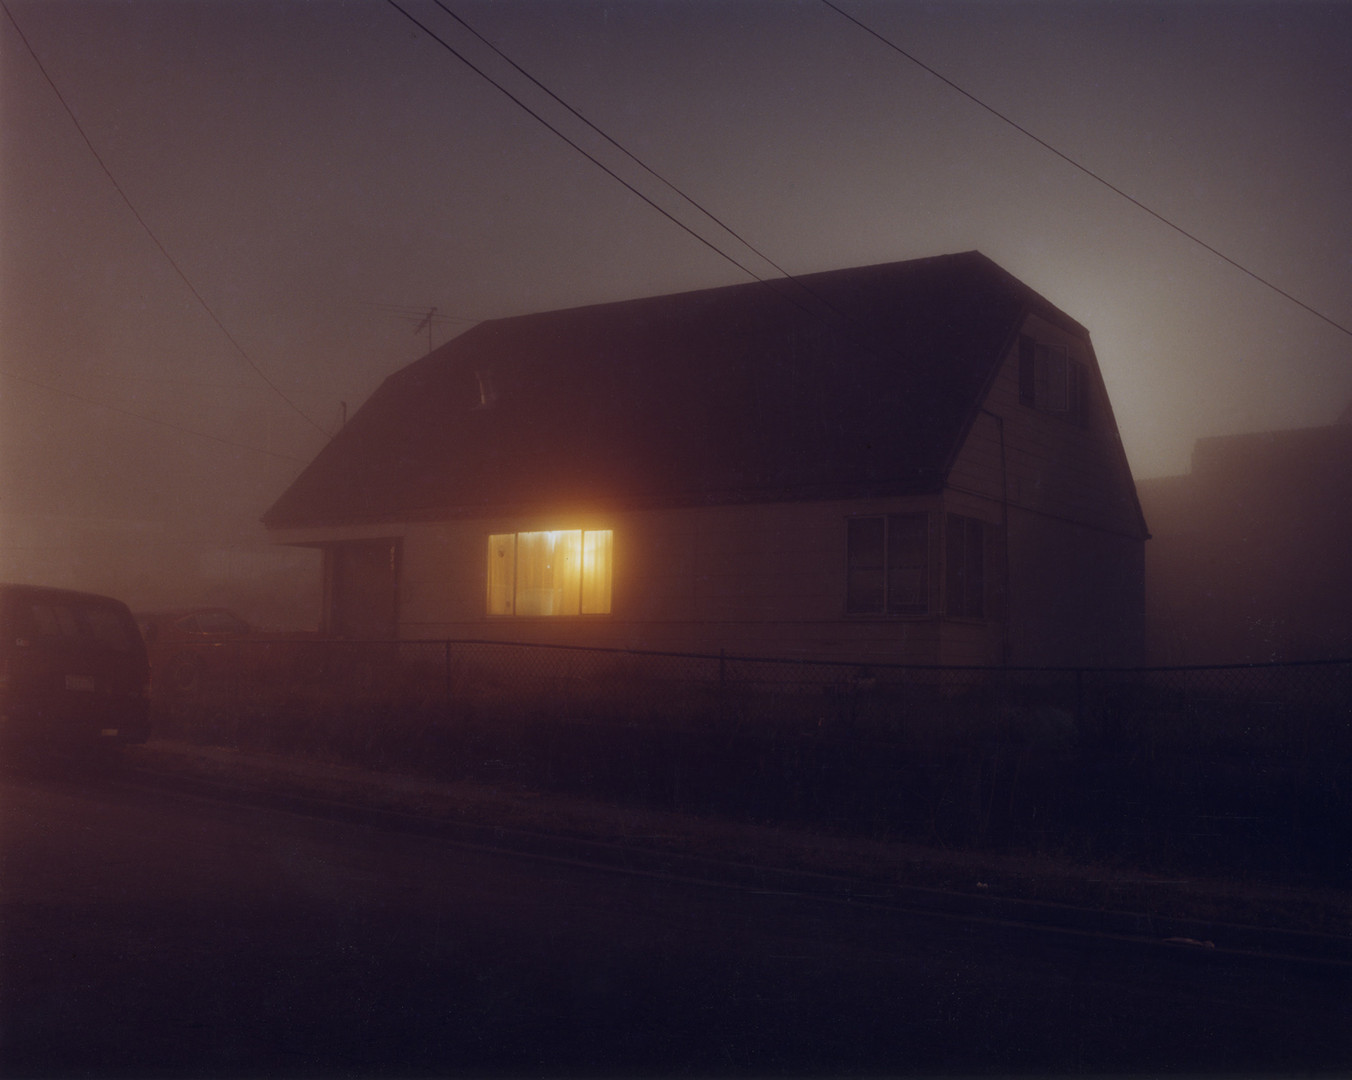 todd-hido-photography-oldskull-0.jpg